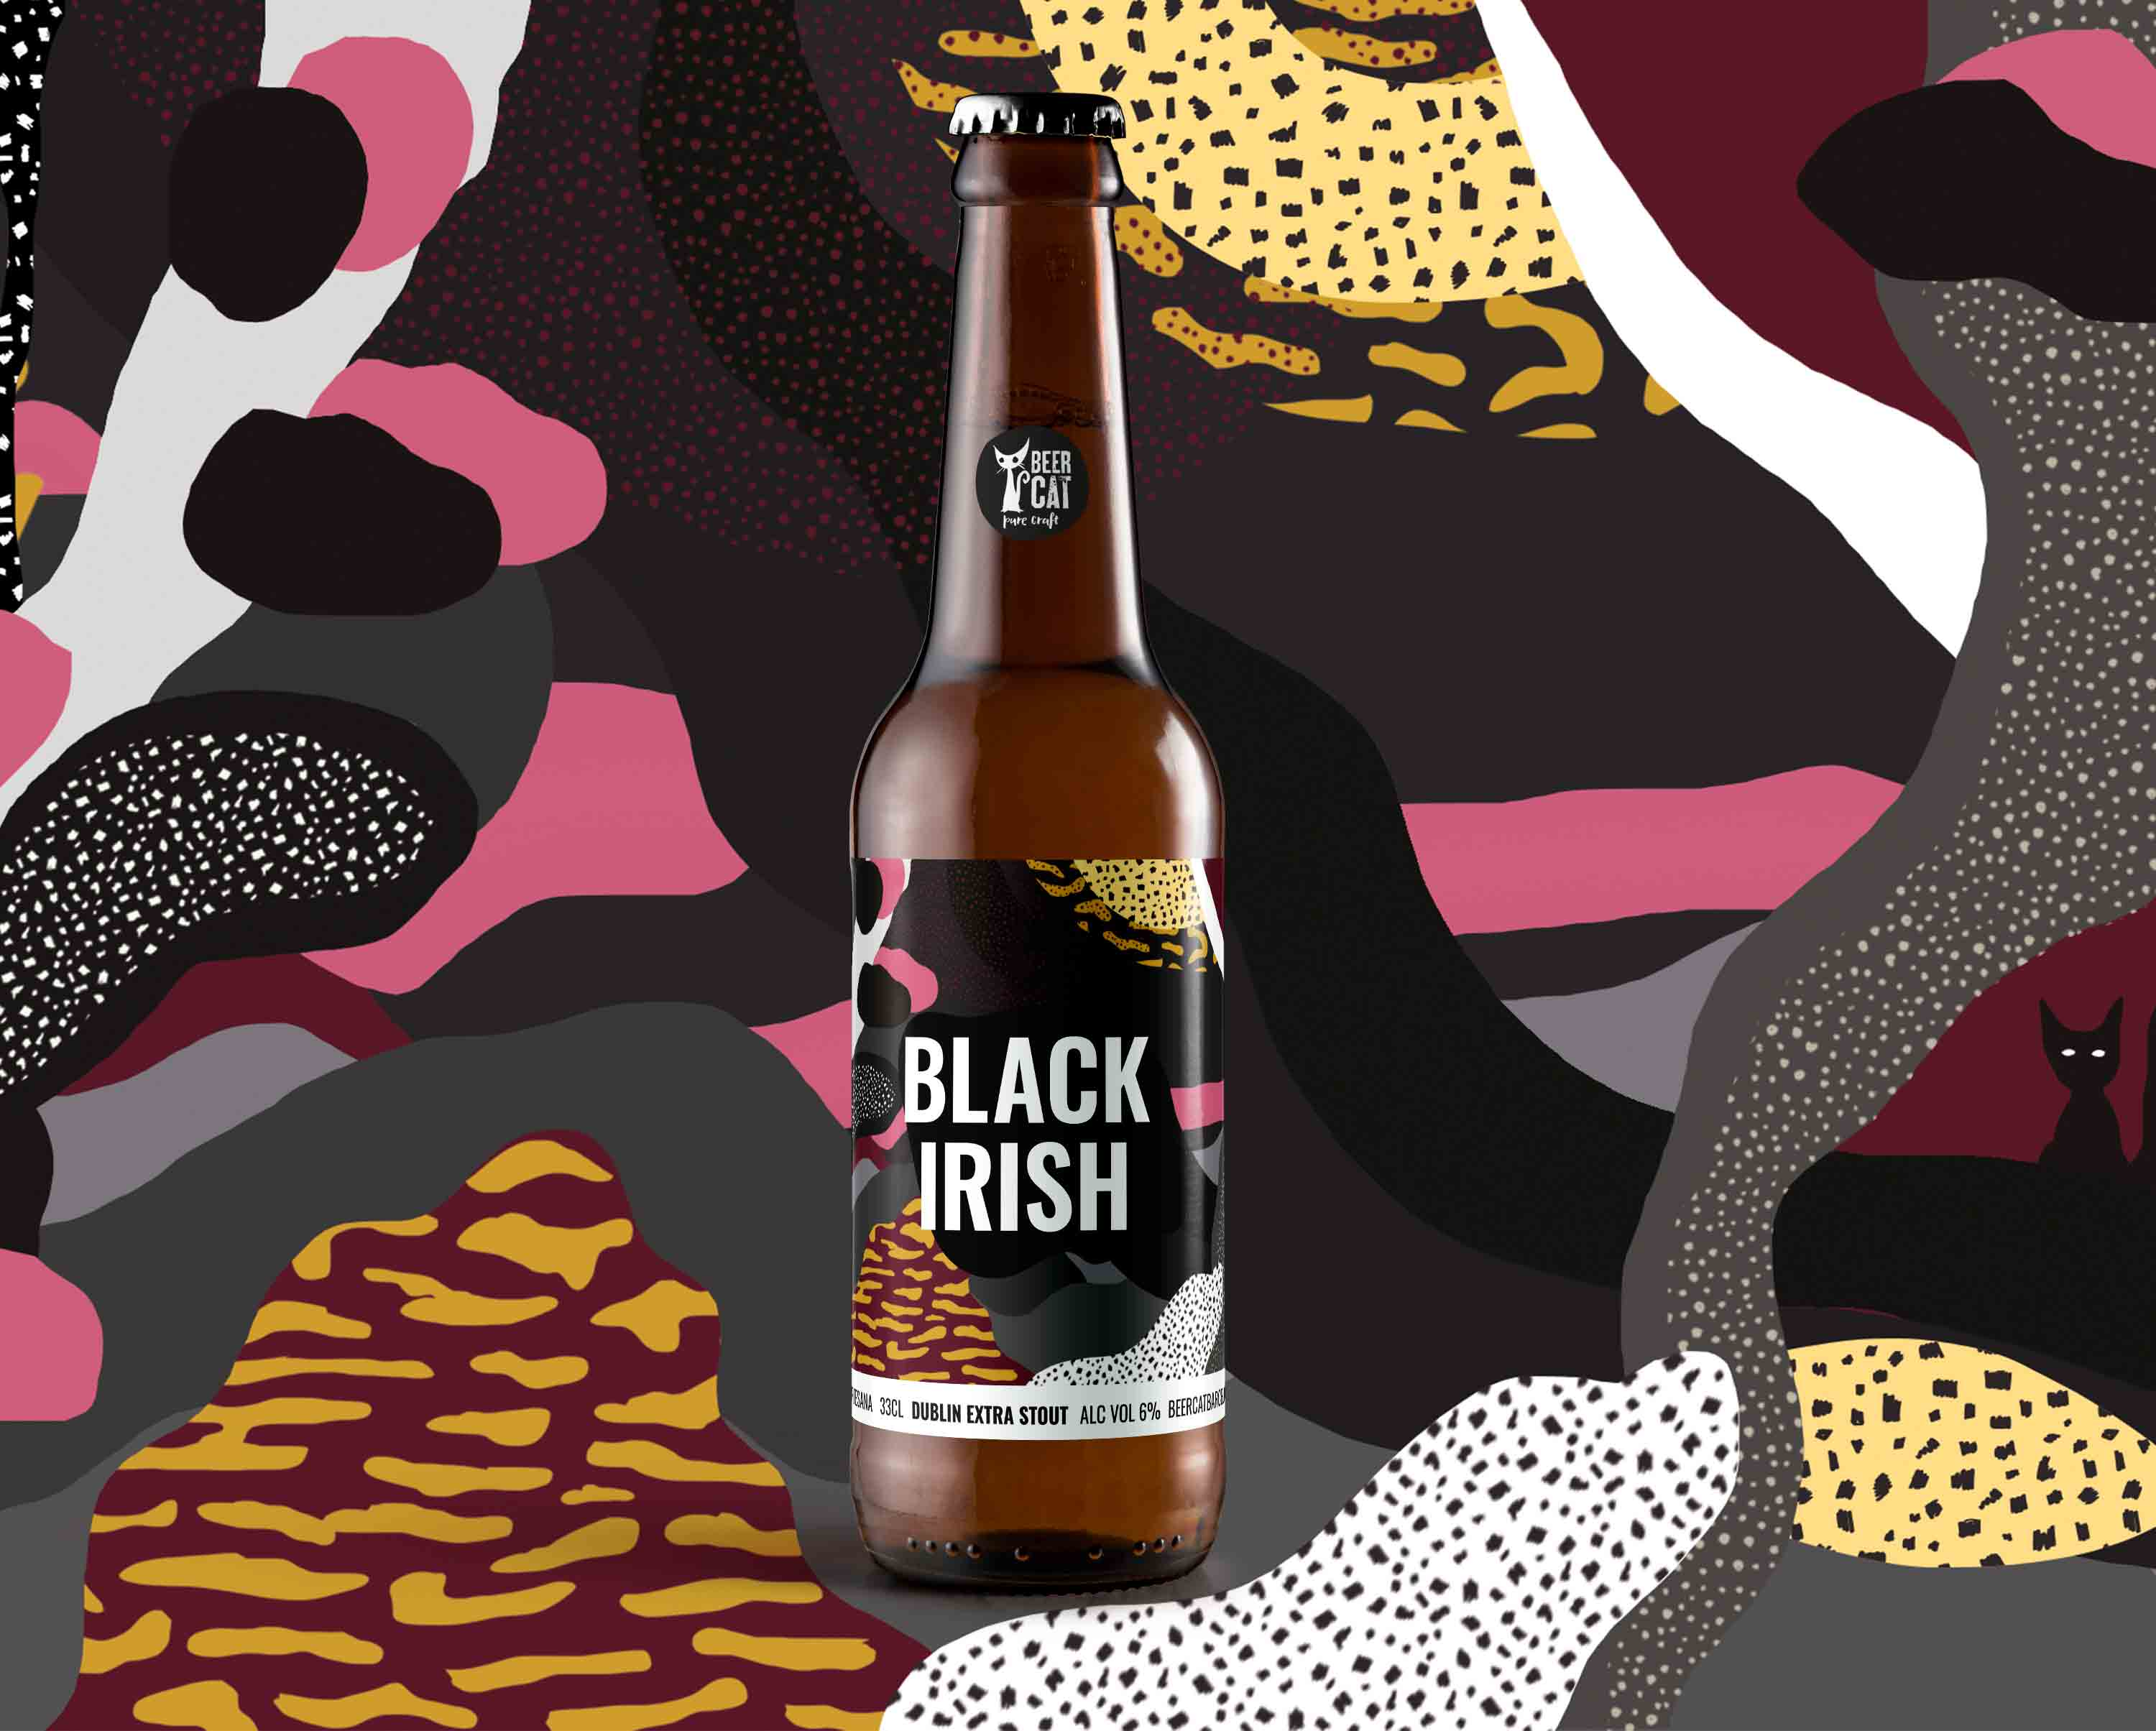 black-irish-craftbeer-vilafranca-penedes-disculpi-studio-angels-pinyol